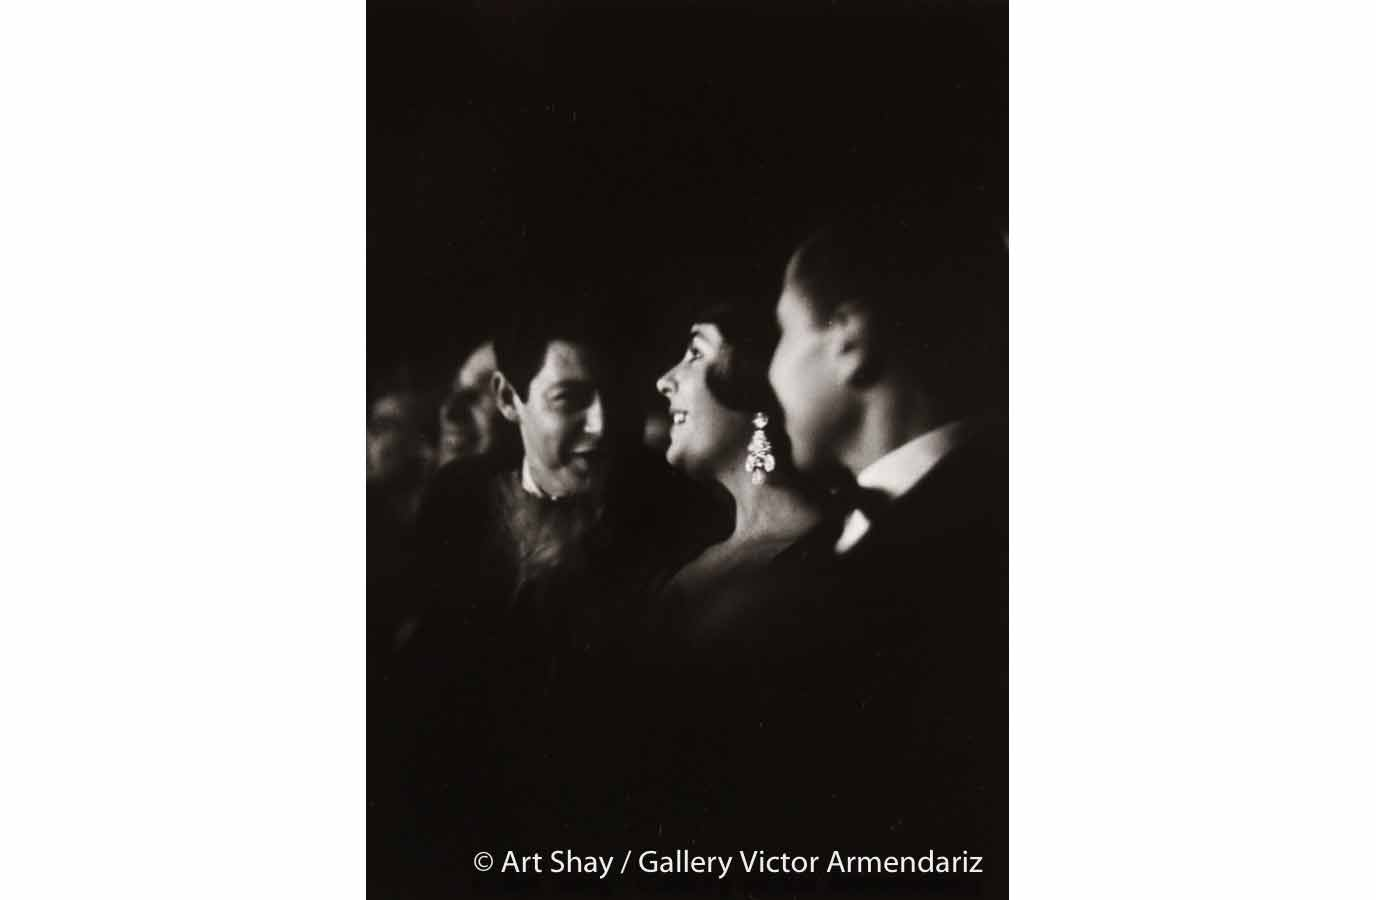 Liz Smelling Smell-o-Vision, Chicago 1960 silver gelatin print 16 x 20 inches